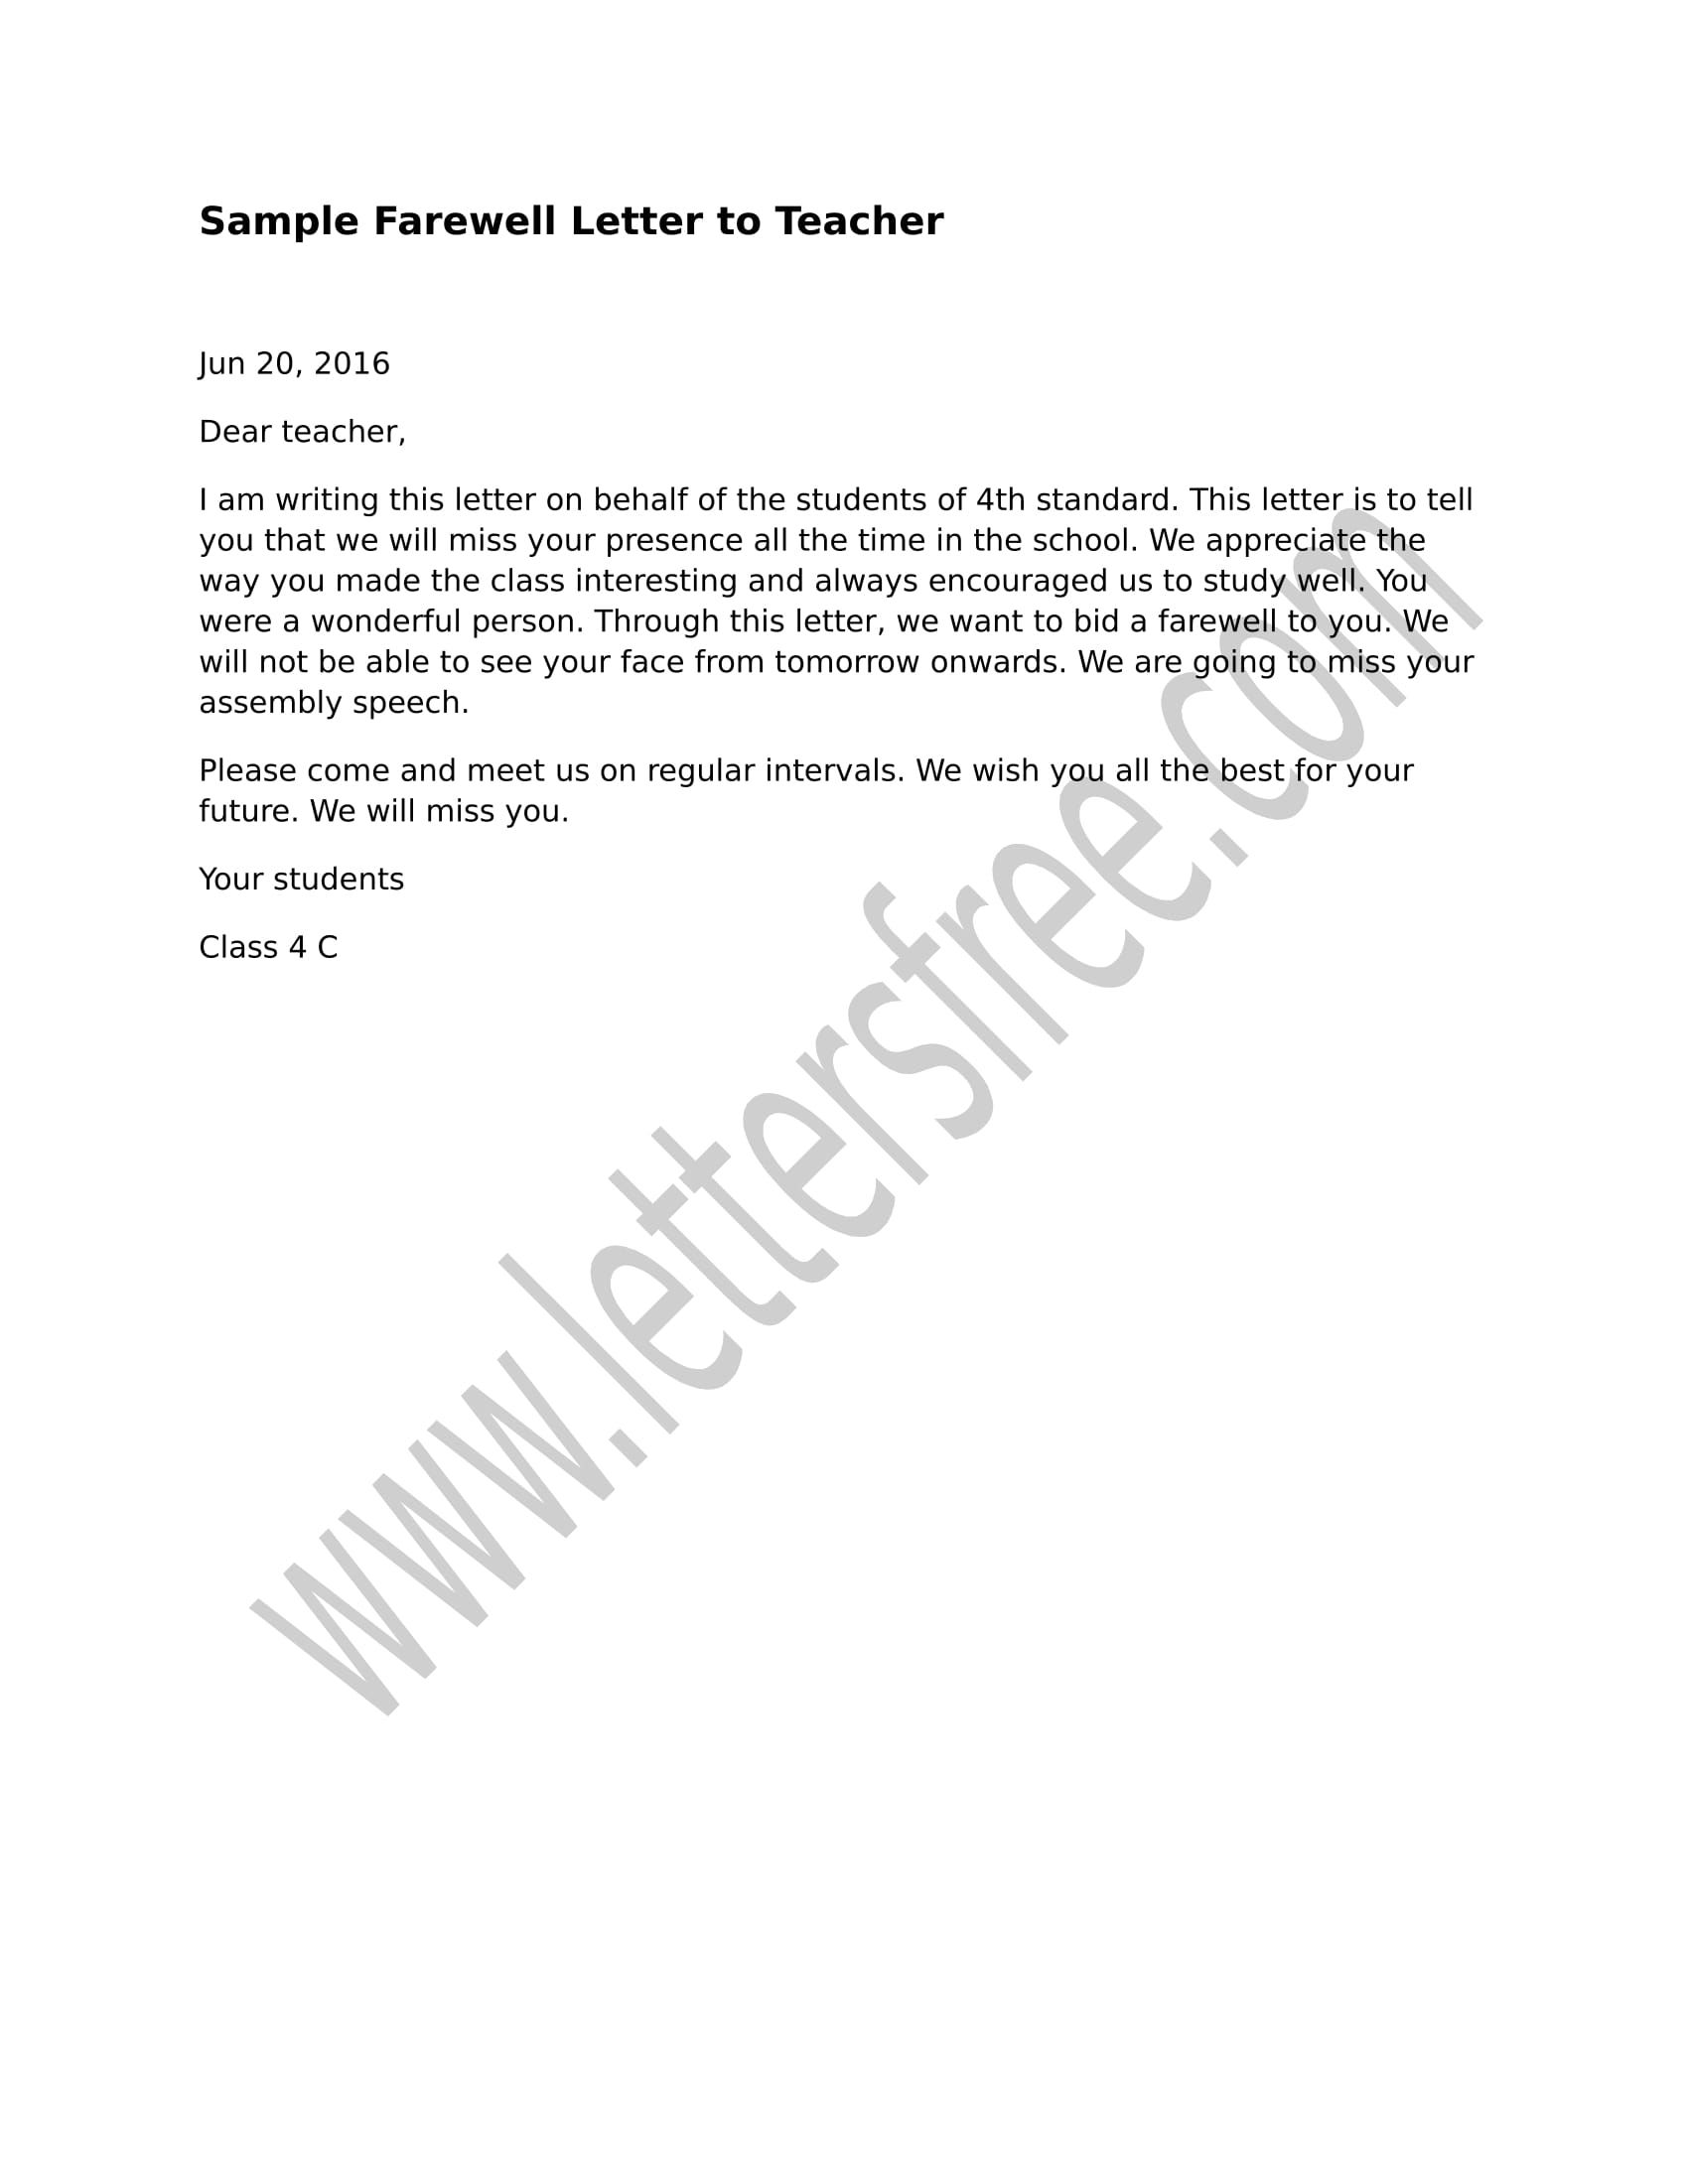 Farewell Letter to Teacher Sample Farewell Letter